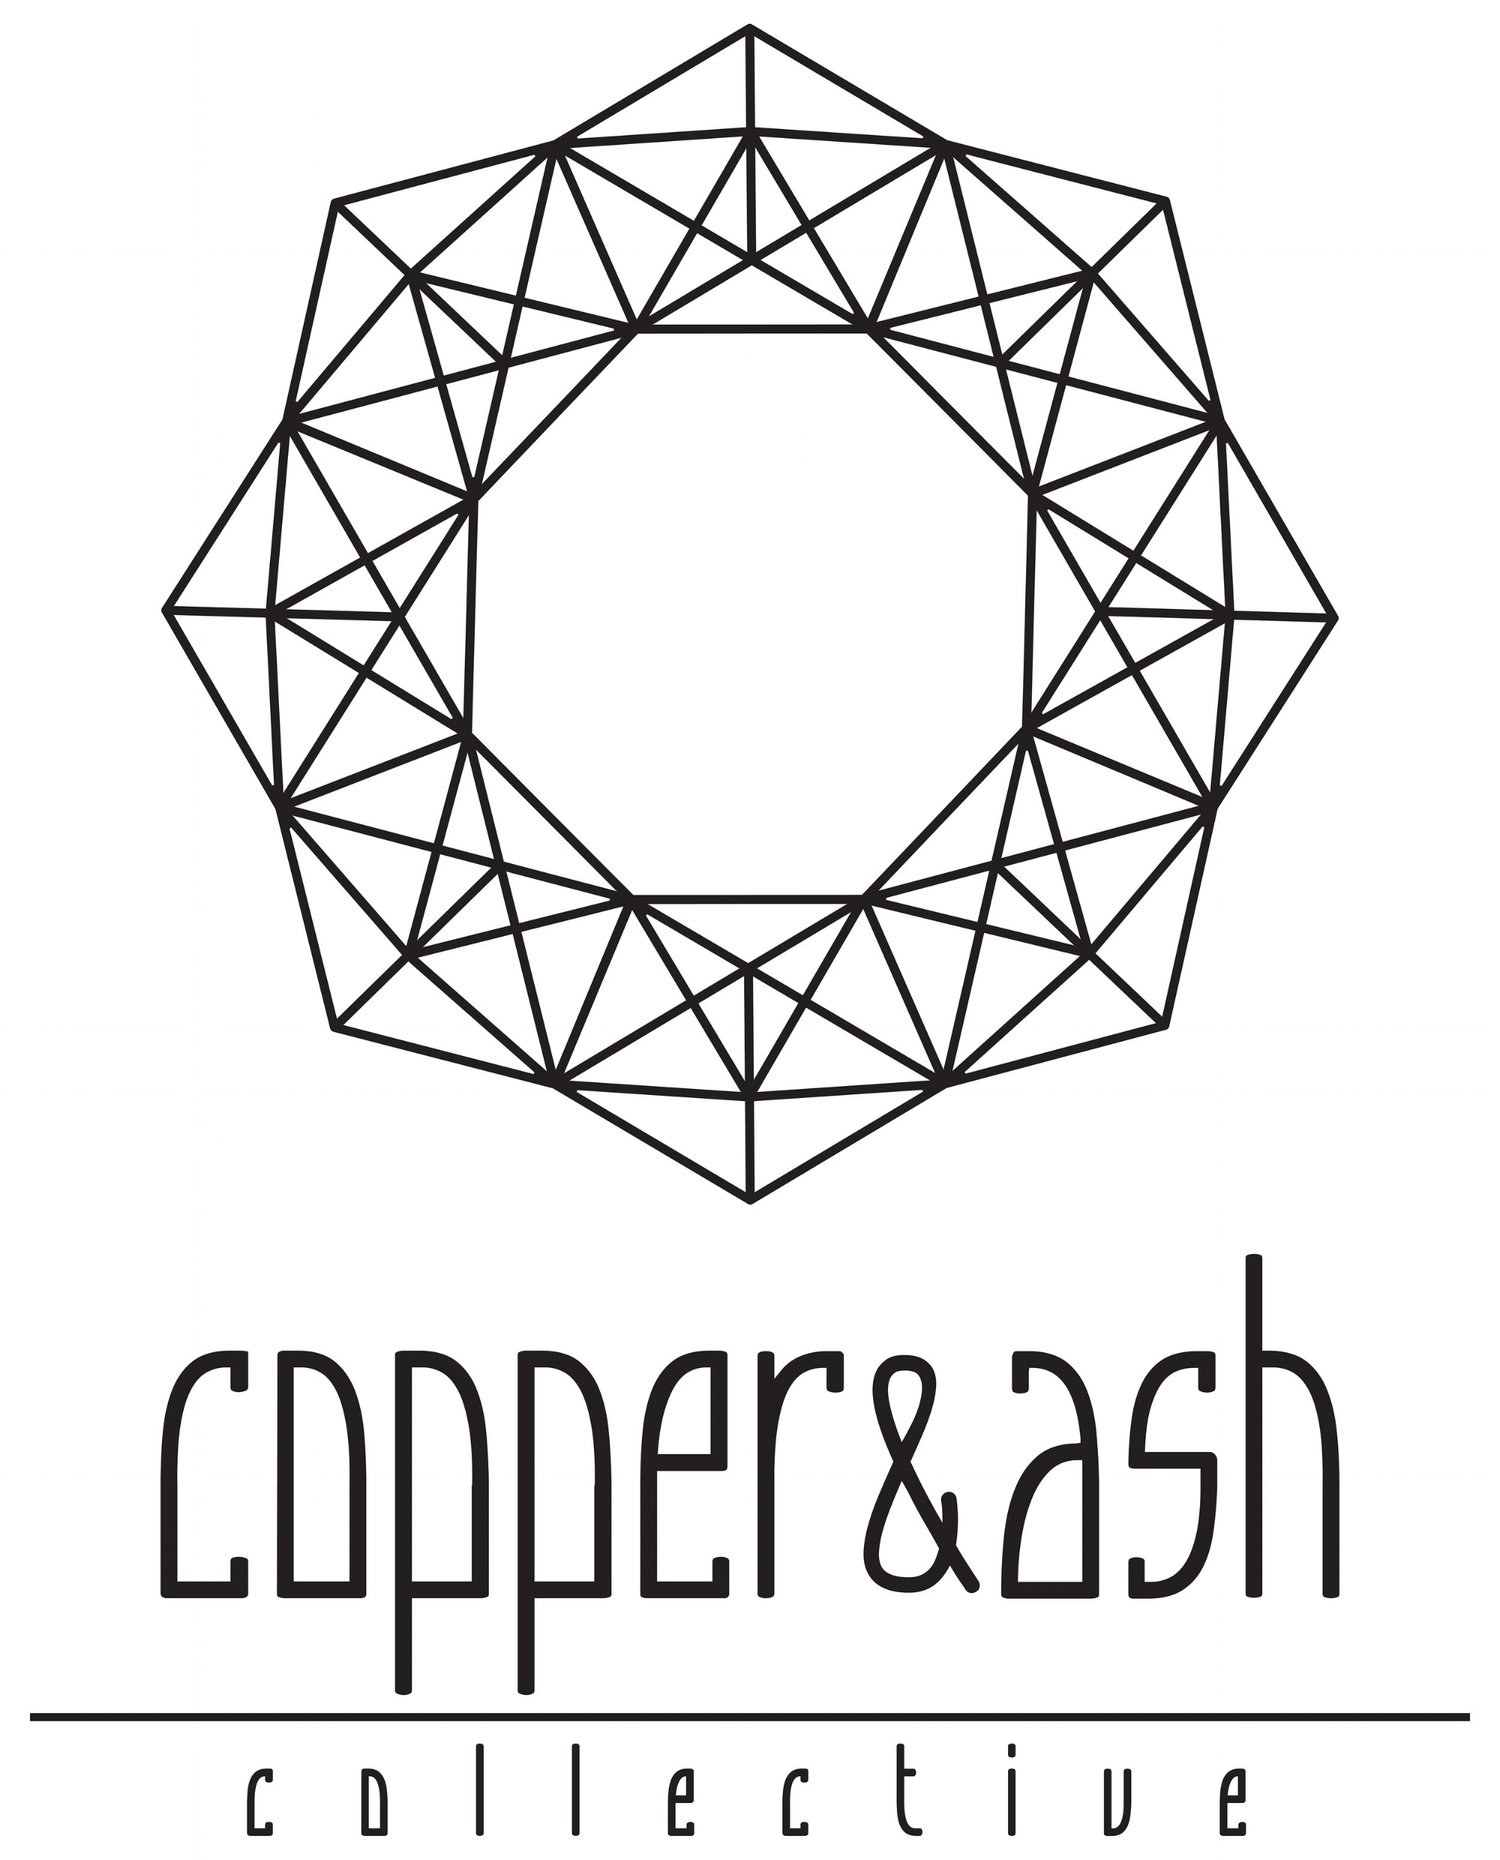 copper & ash collective